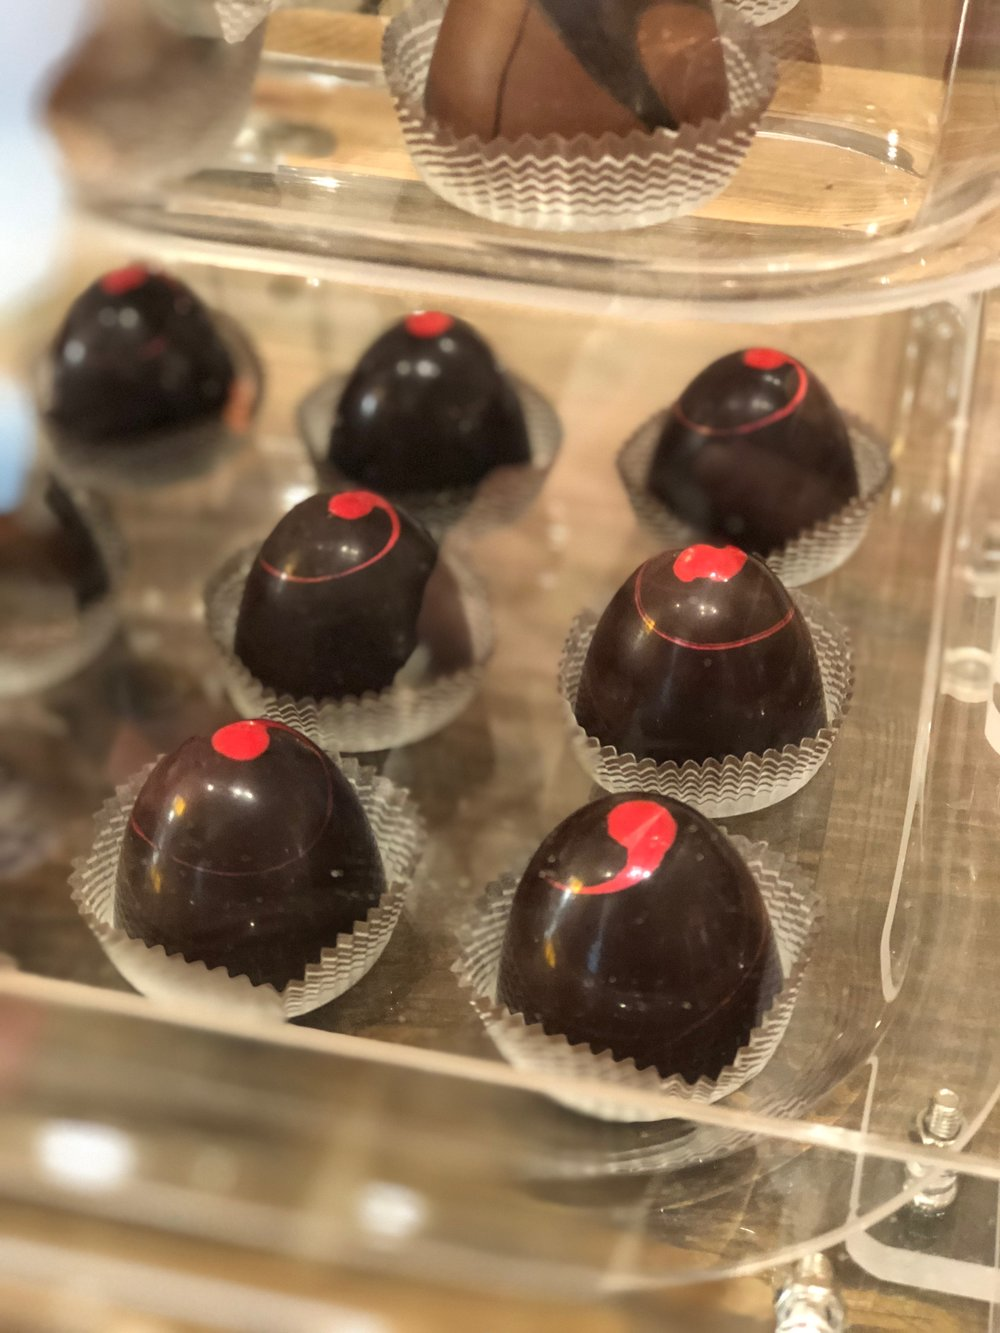 Strawberry Sublime truffles are one of the many chocolate delicacies we offer at Cape Charles Candy Company. Choose from a variety of truffles, pretzels, fudge from our chocolate cases.